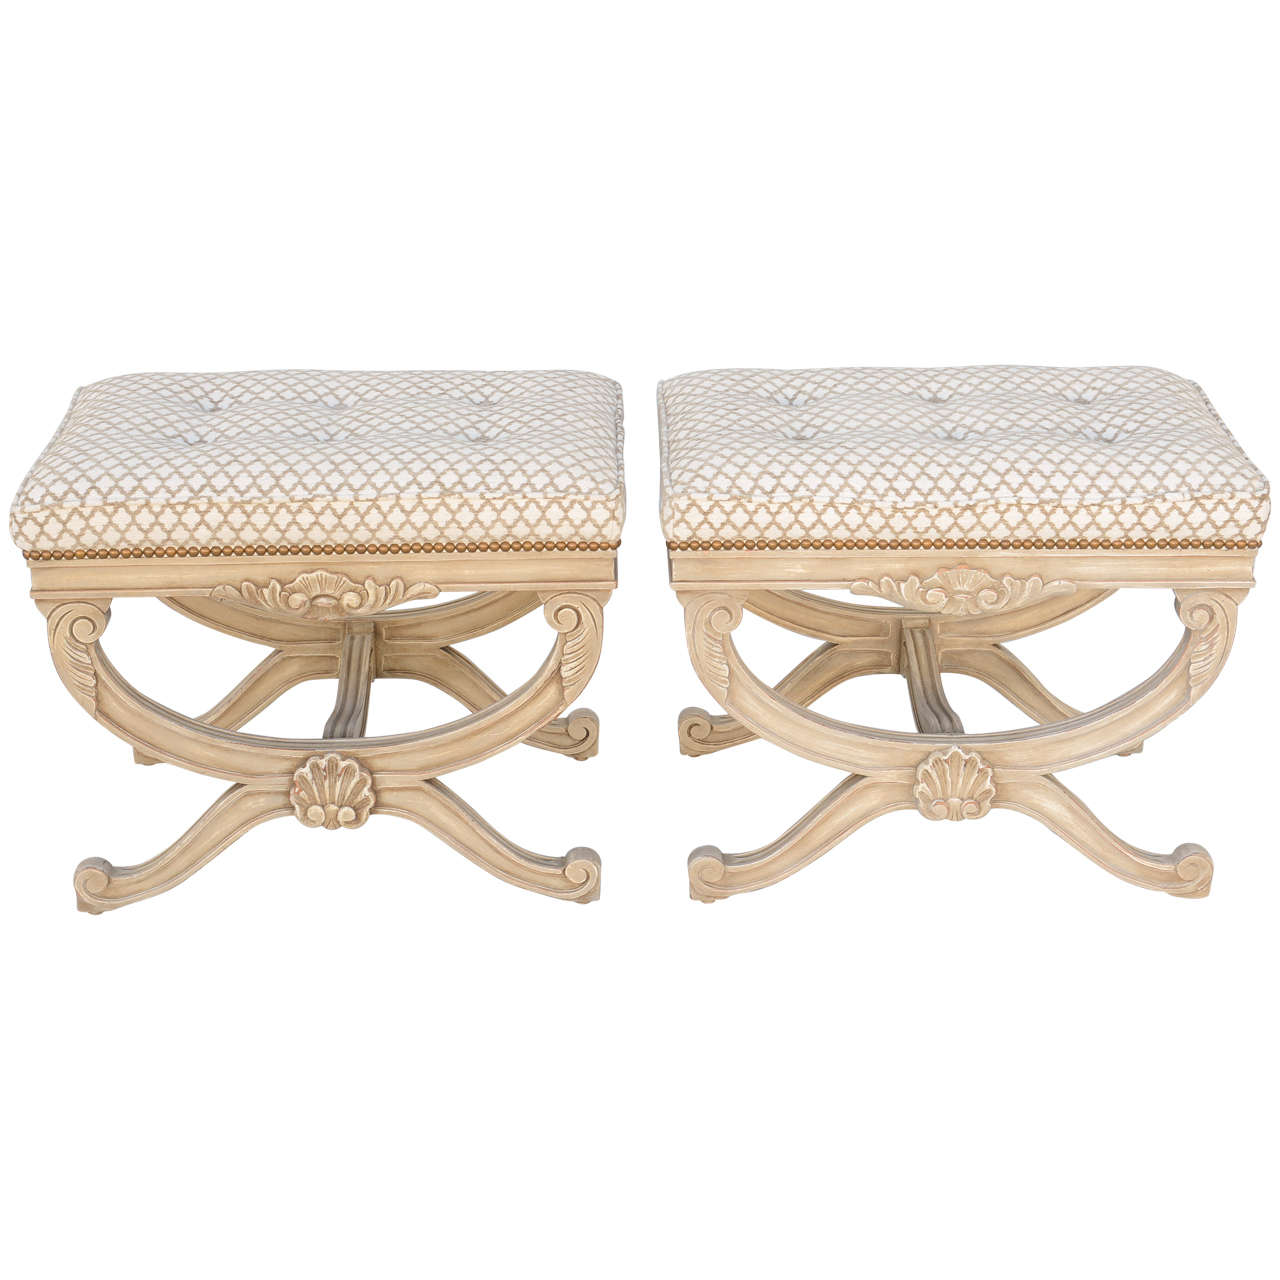 Pair of Empire Style X-Frame Benches For Sale